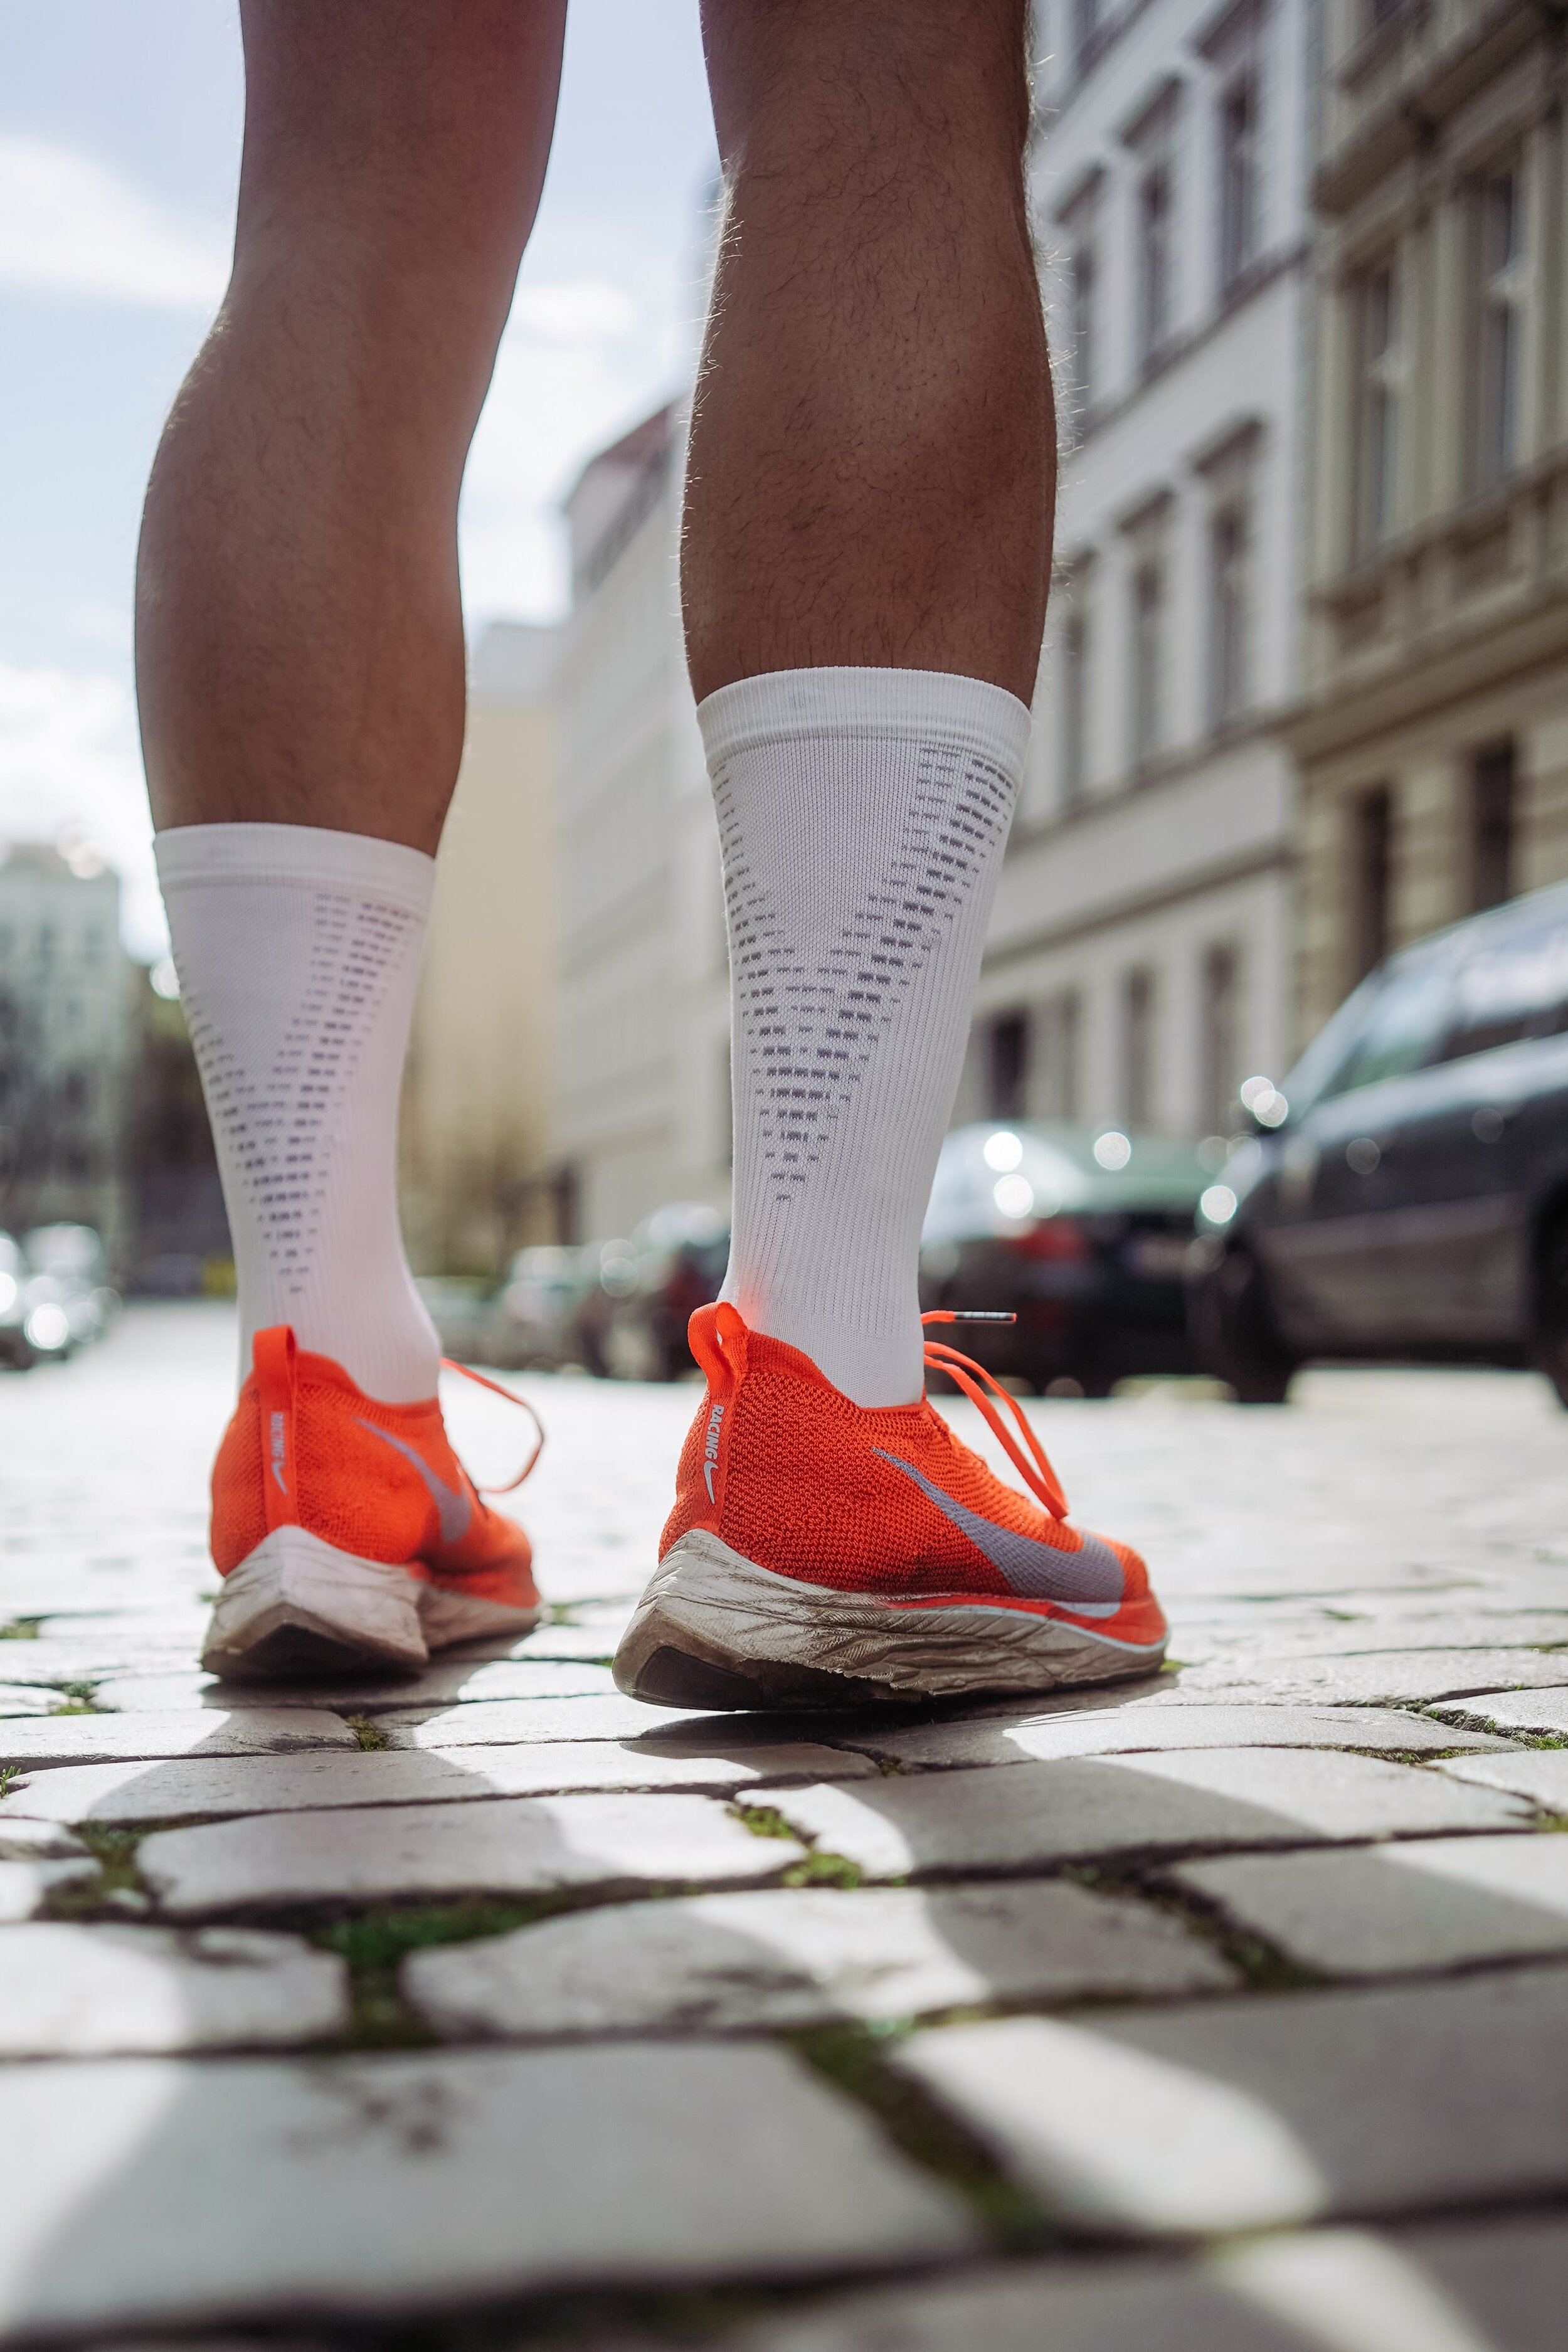 Looking to get faster? Compression socks and shoes have been looked to for that performance gain